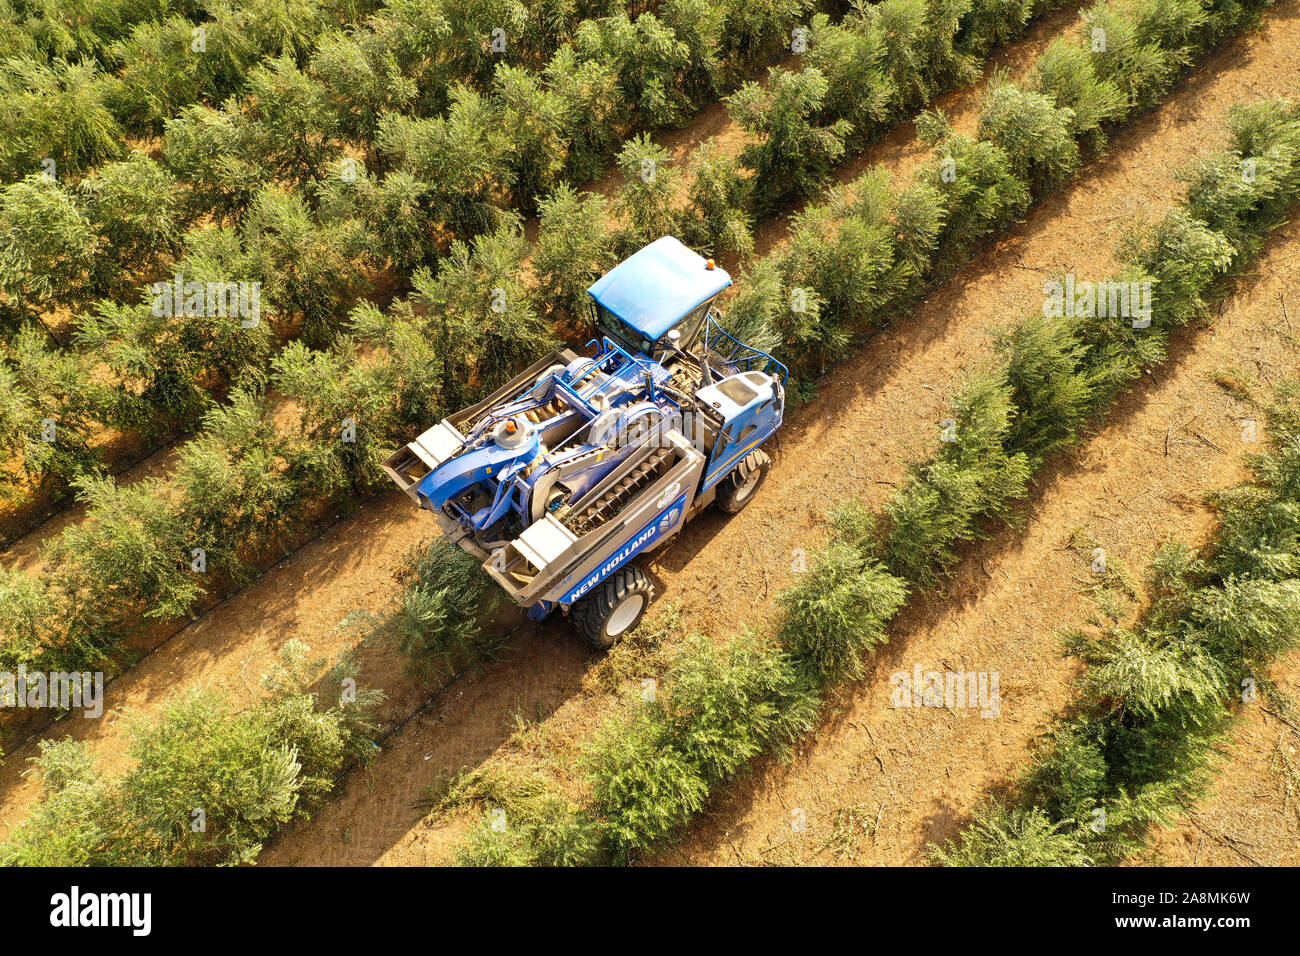 New Holland Olive harvester working in a field, Aerial view. Stock Photo